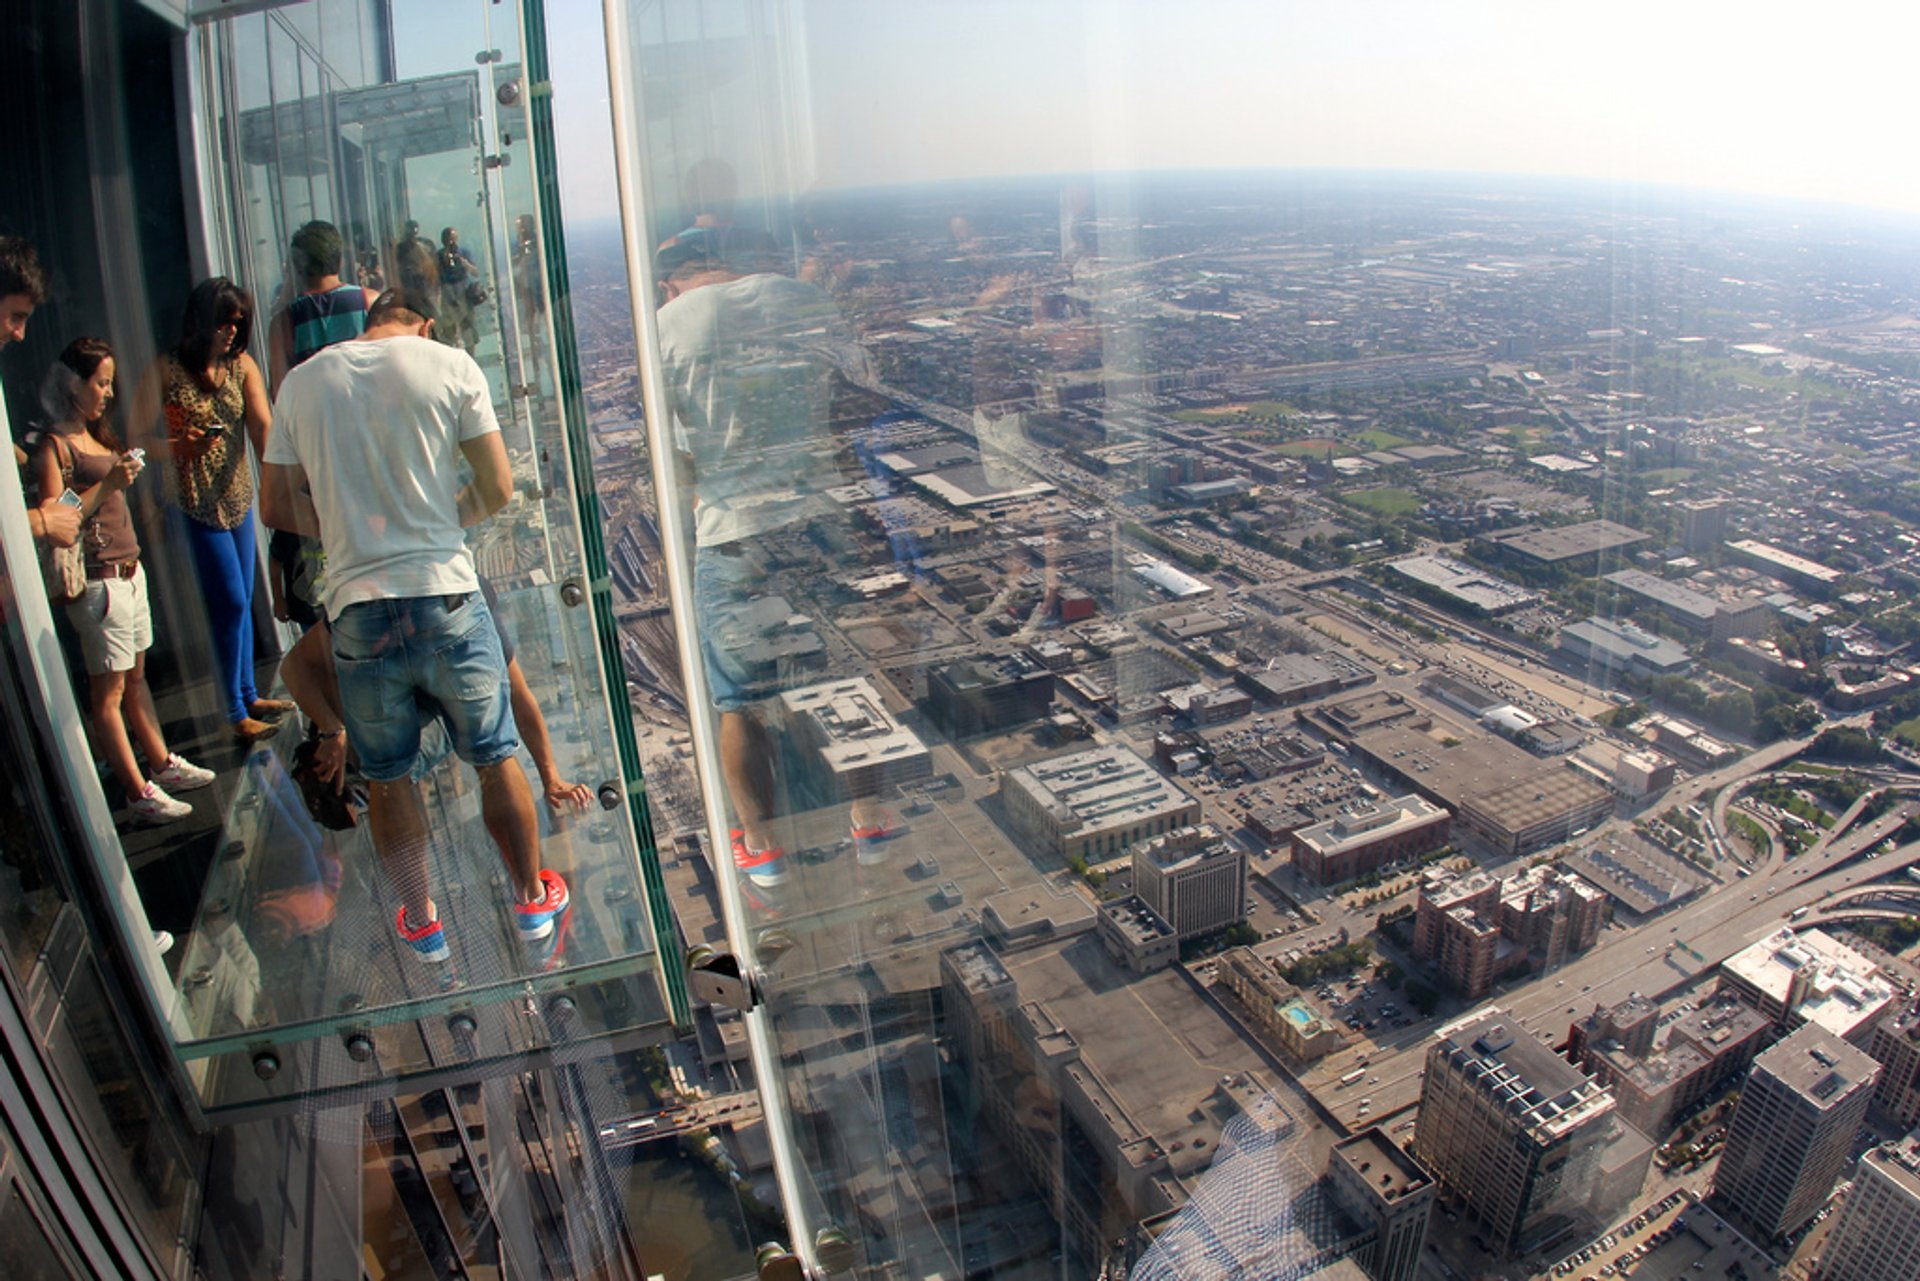 Looking out the glass balcony at the skydeck 2020